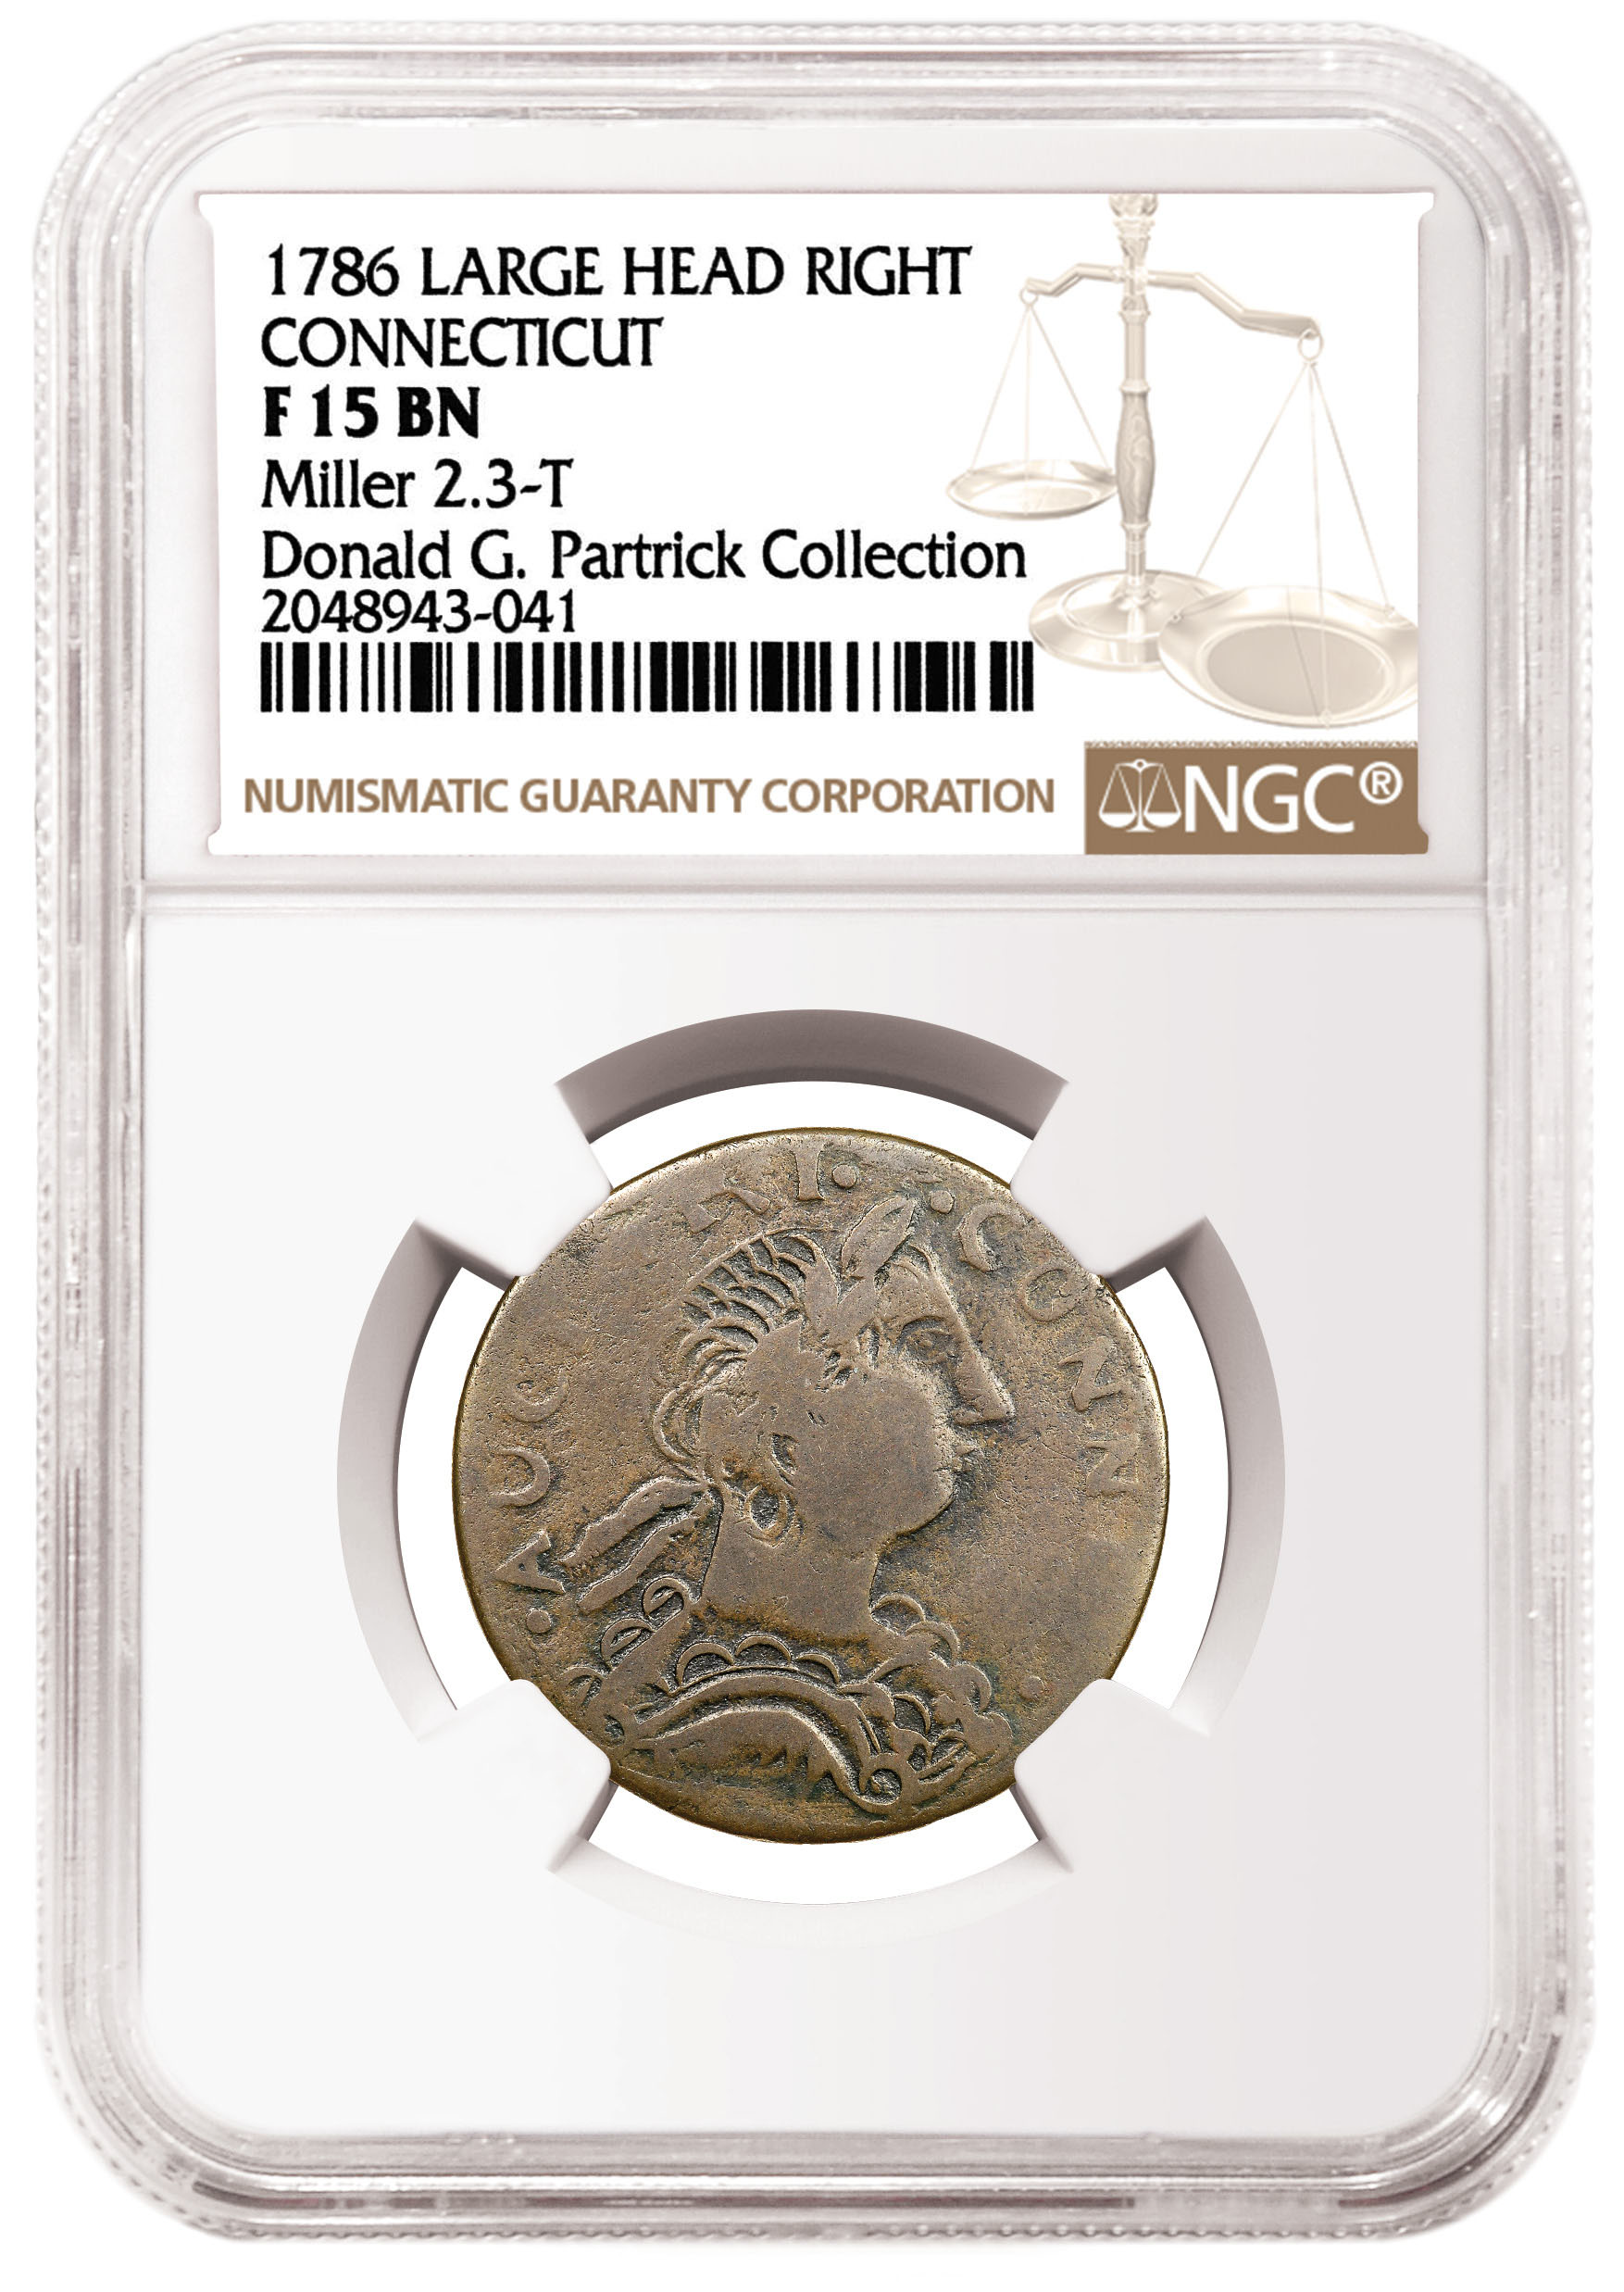 thumbnail image for Stunning NGC-certified Connecticut Coppers from the Partrick Collection Being Sold